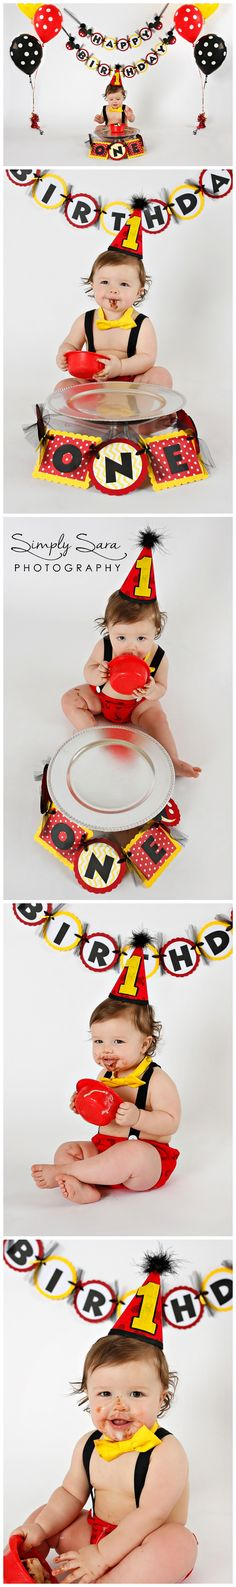 1 Year Old Boy Photo Shoot Ideas & Poses - Indoor Session - Cake Smash - Mickey Mouse Theme Birthday - Billings, MT Child & Portrait Photographer